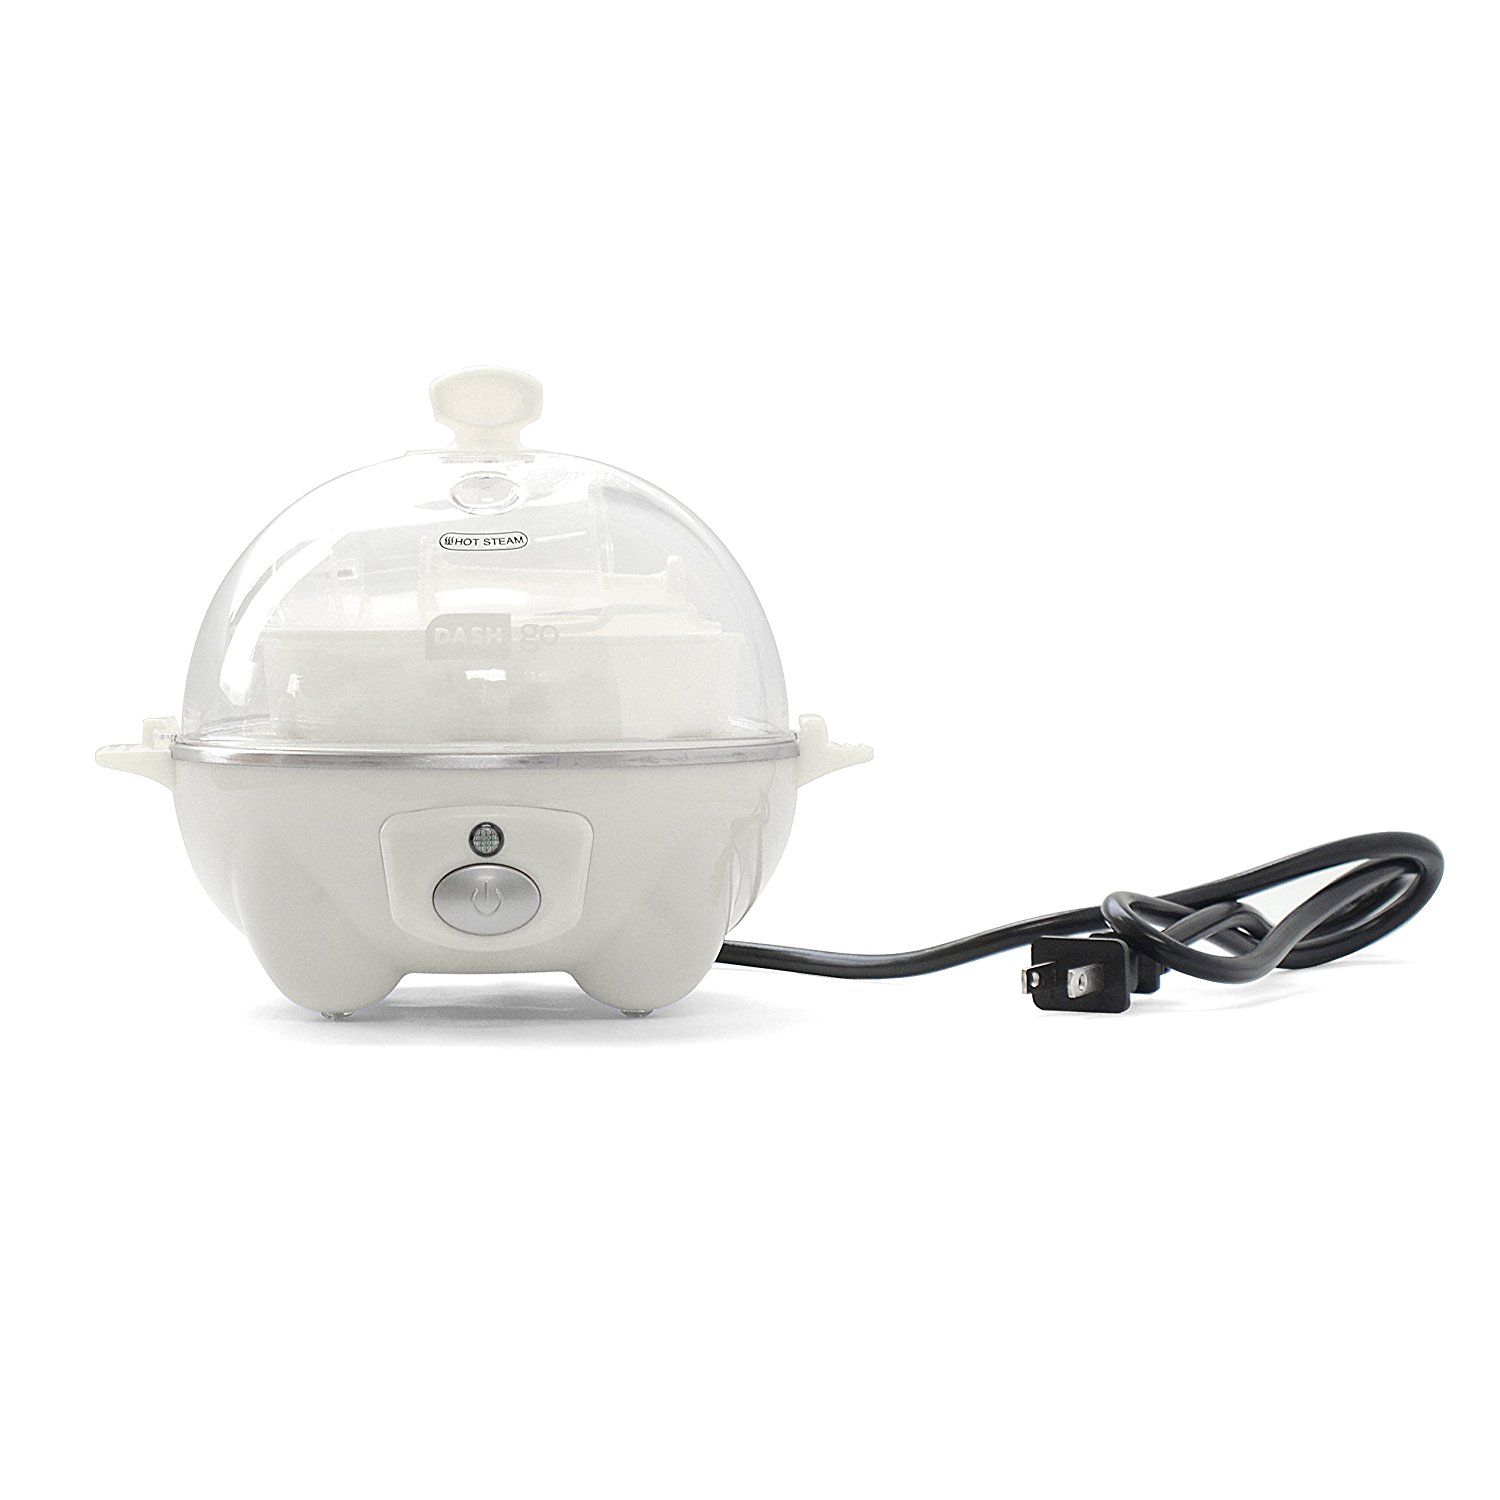 dash go rapid egg cooker white details can be found by clicking